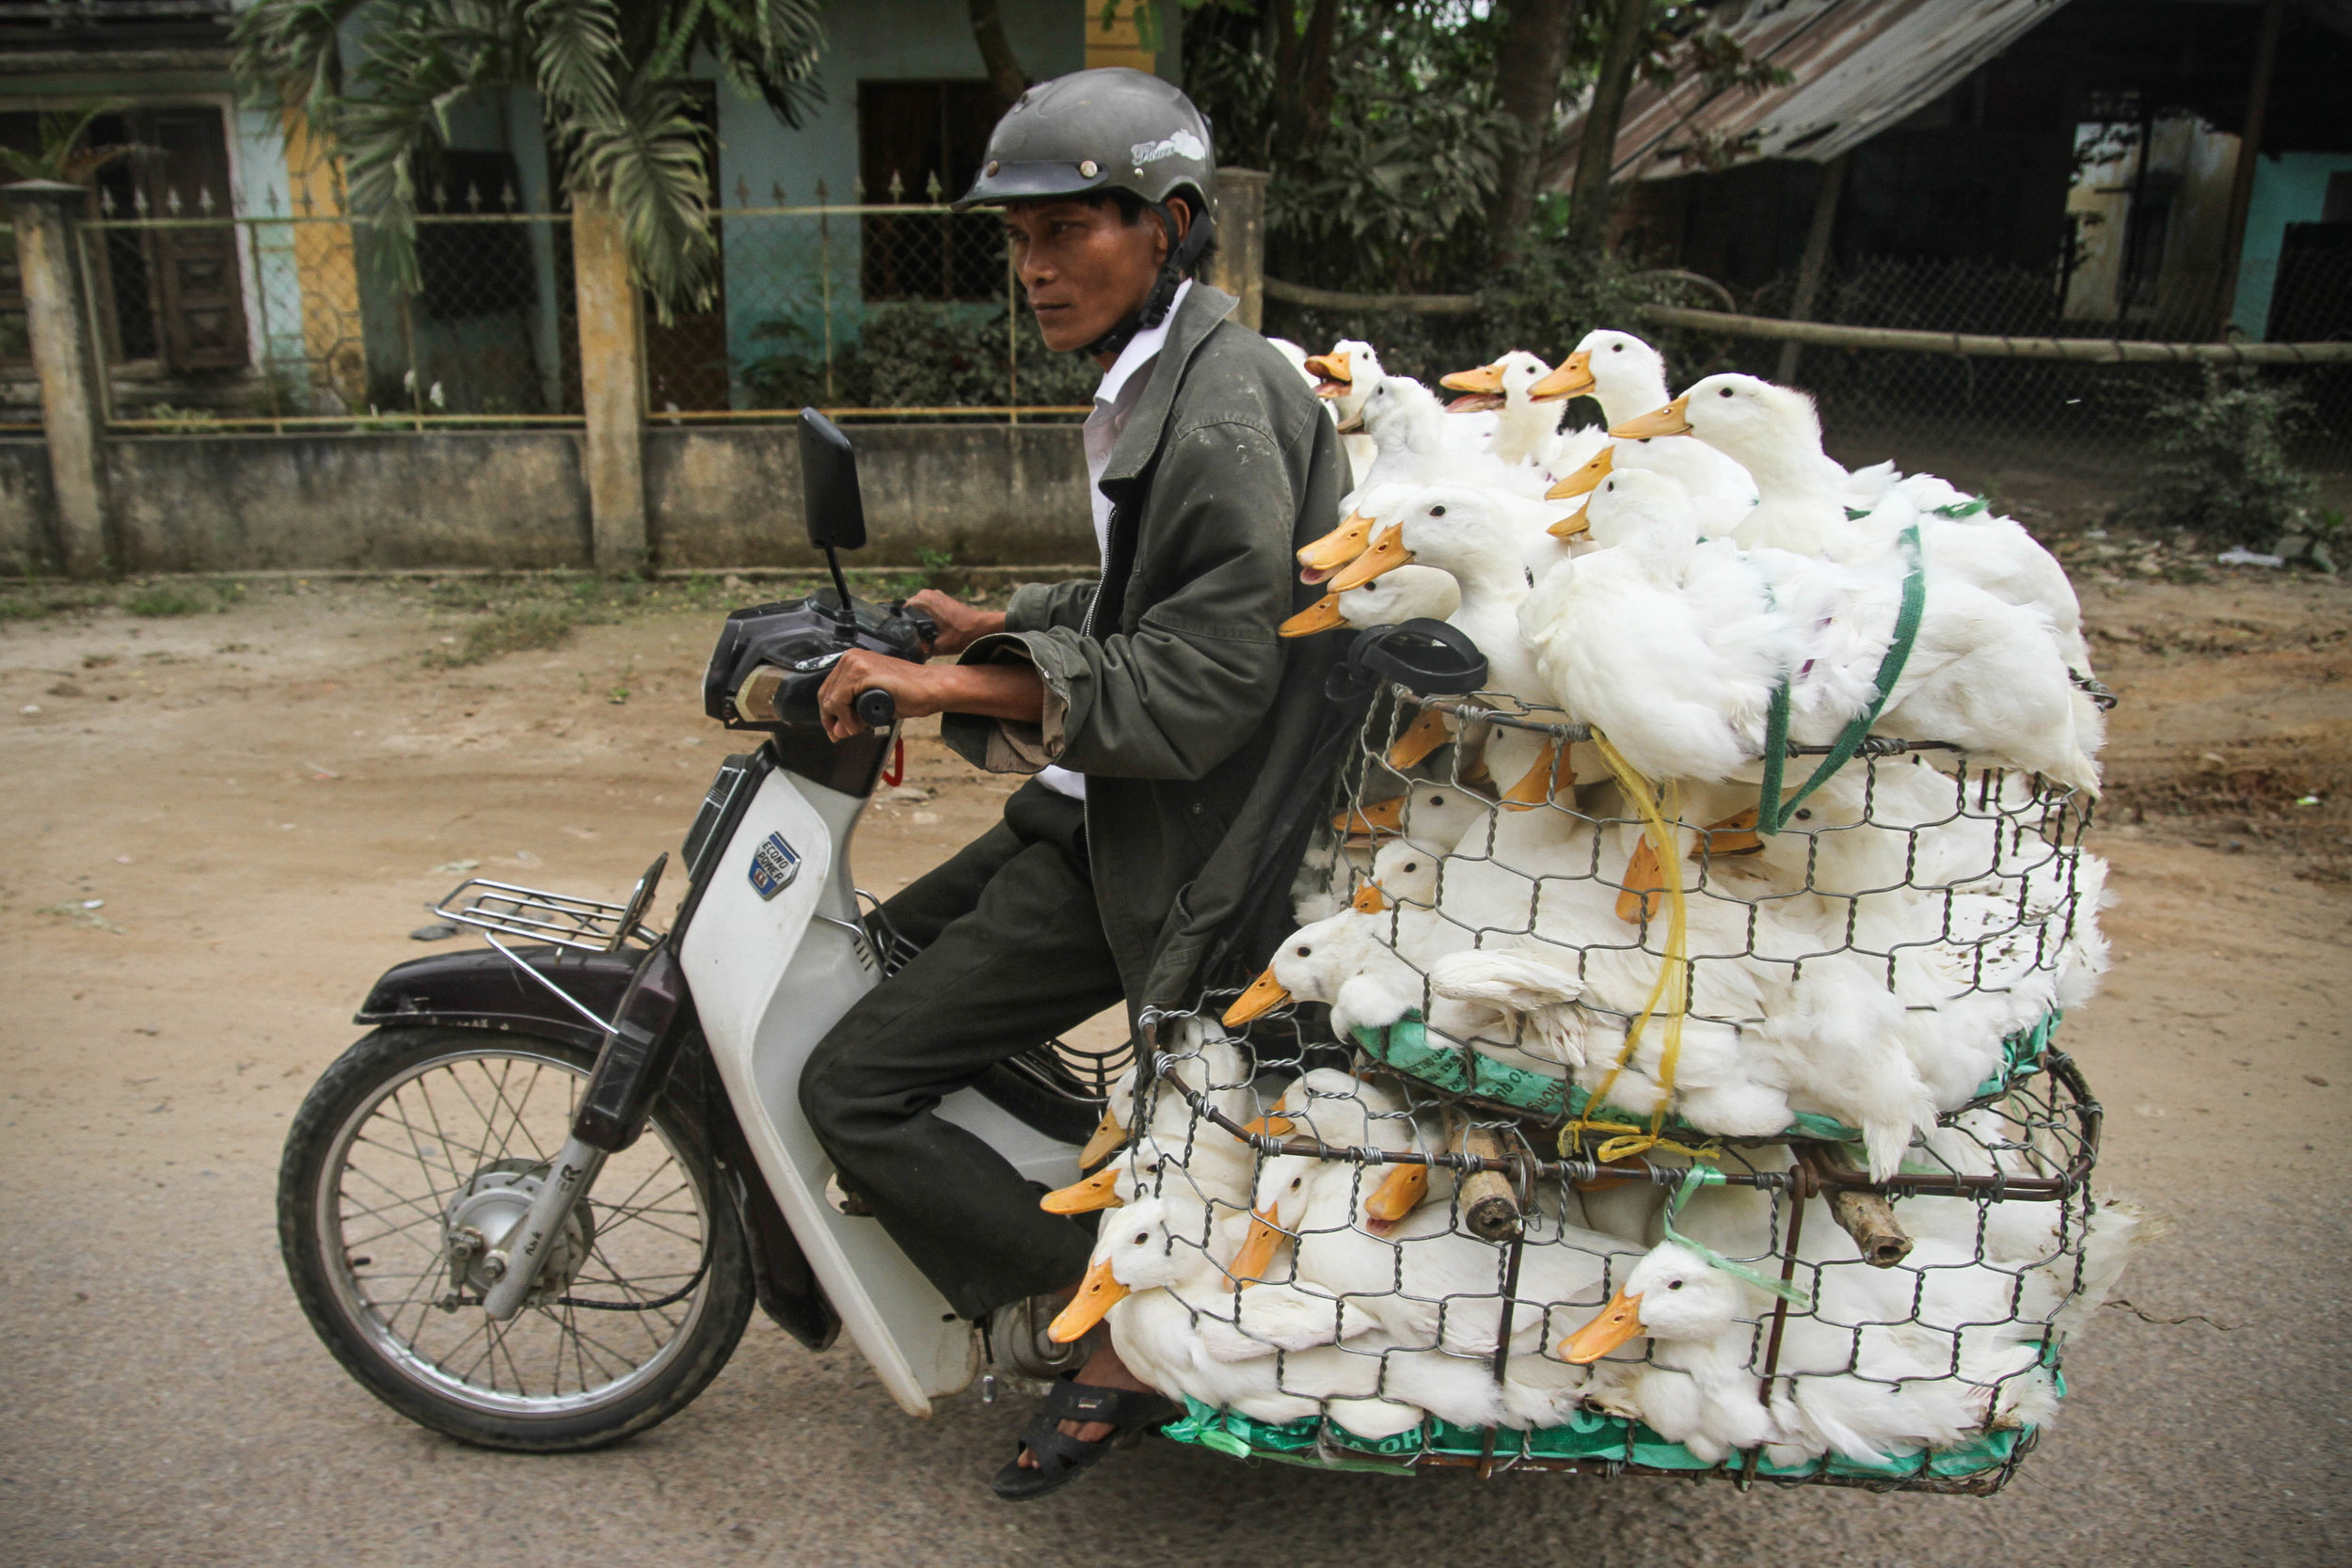 Vietnamese Delivery Man